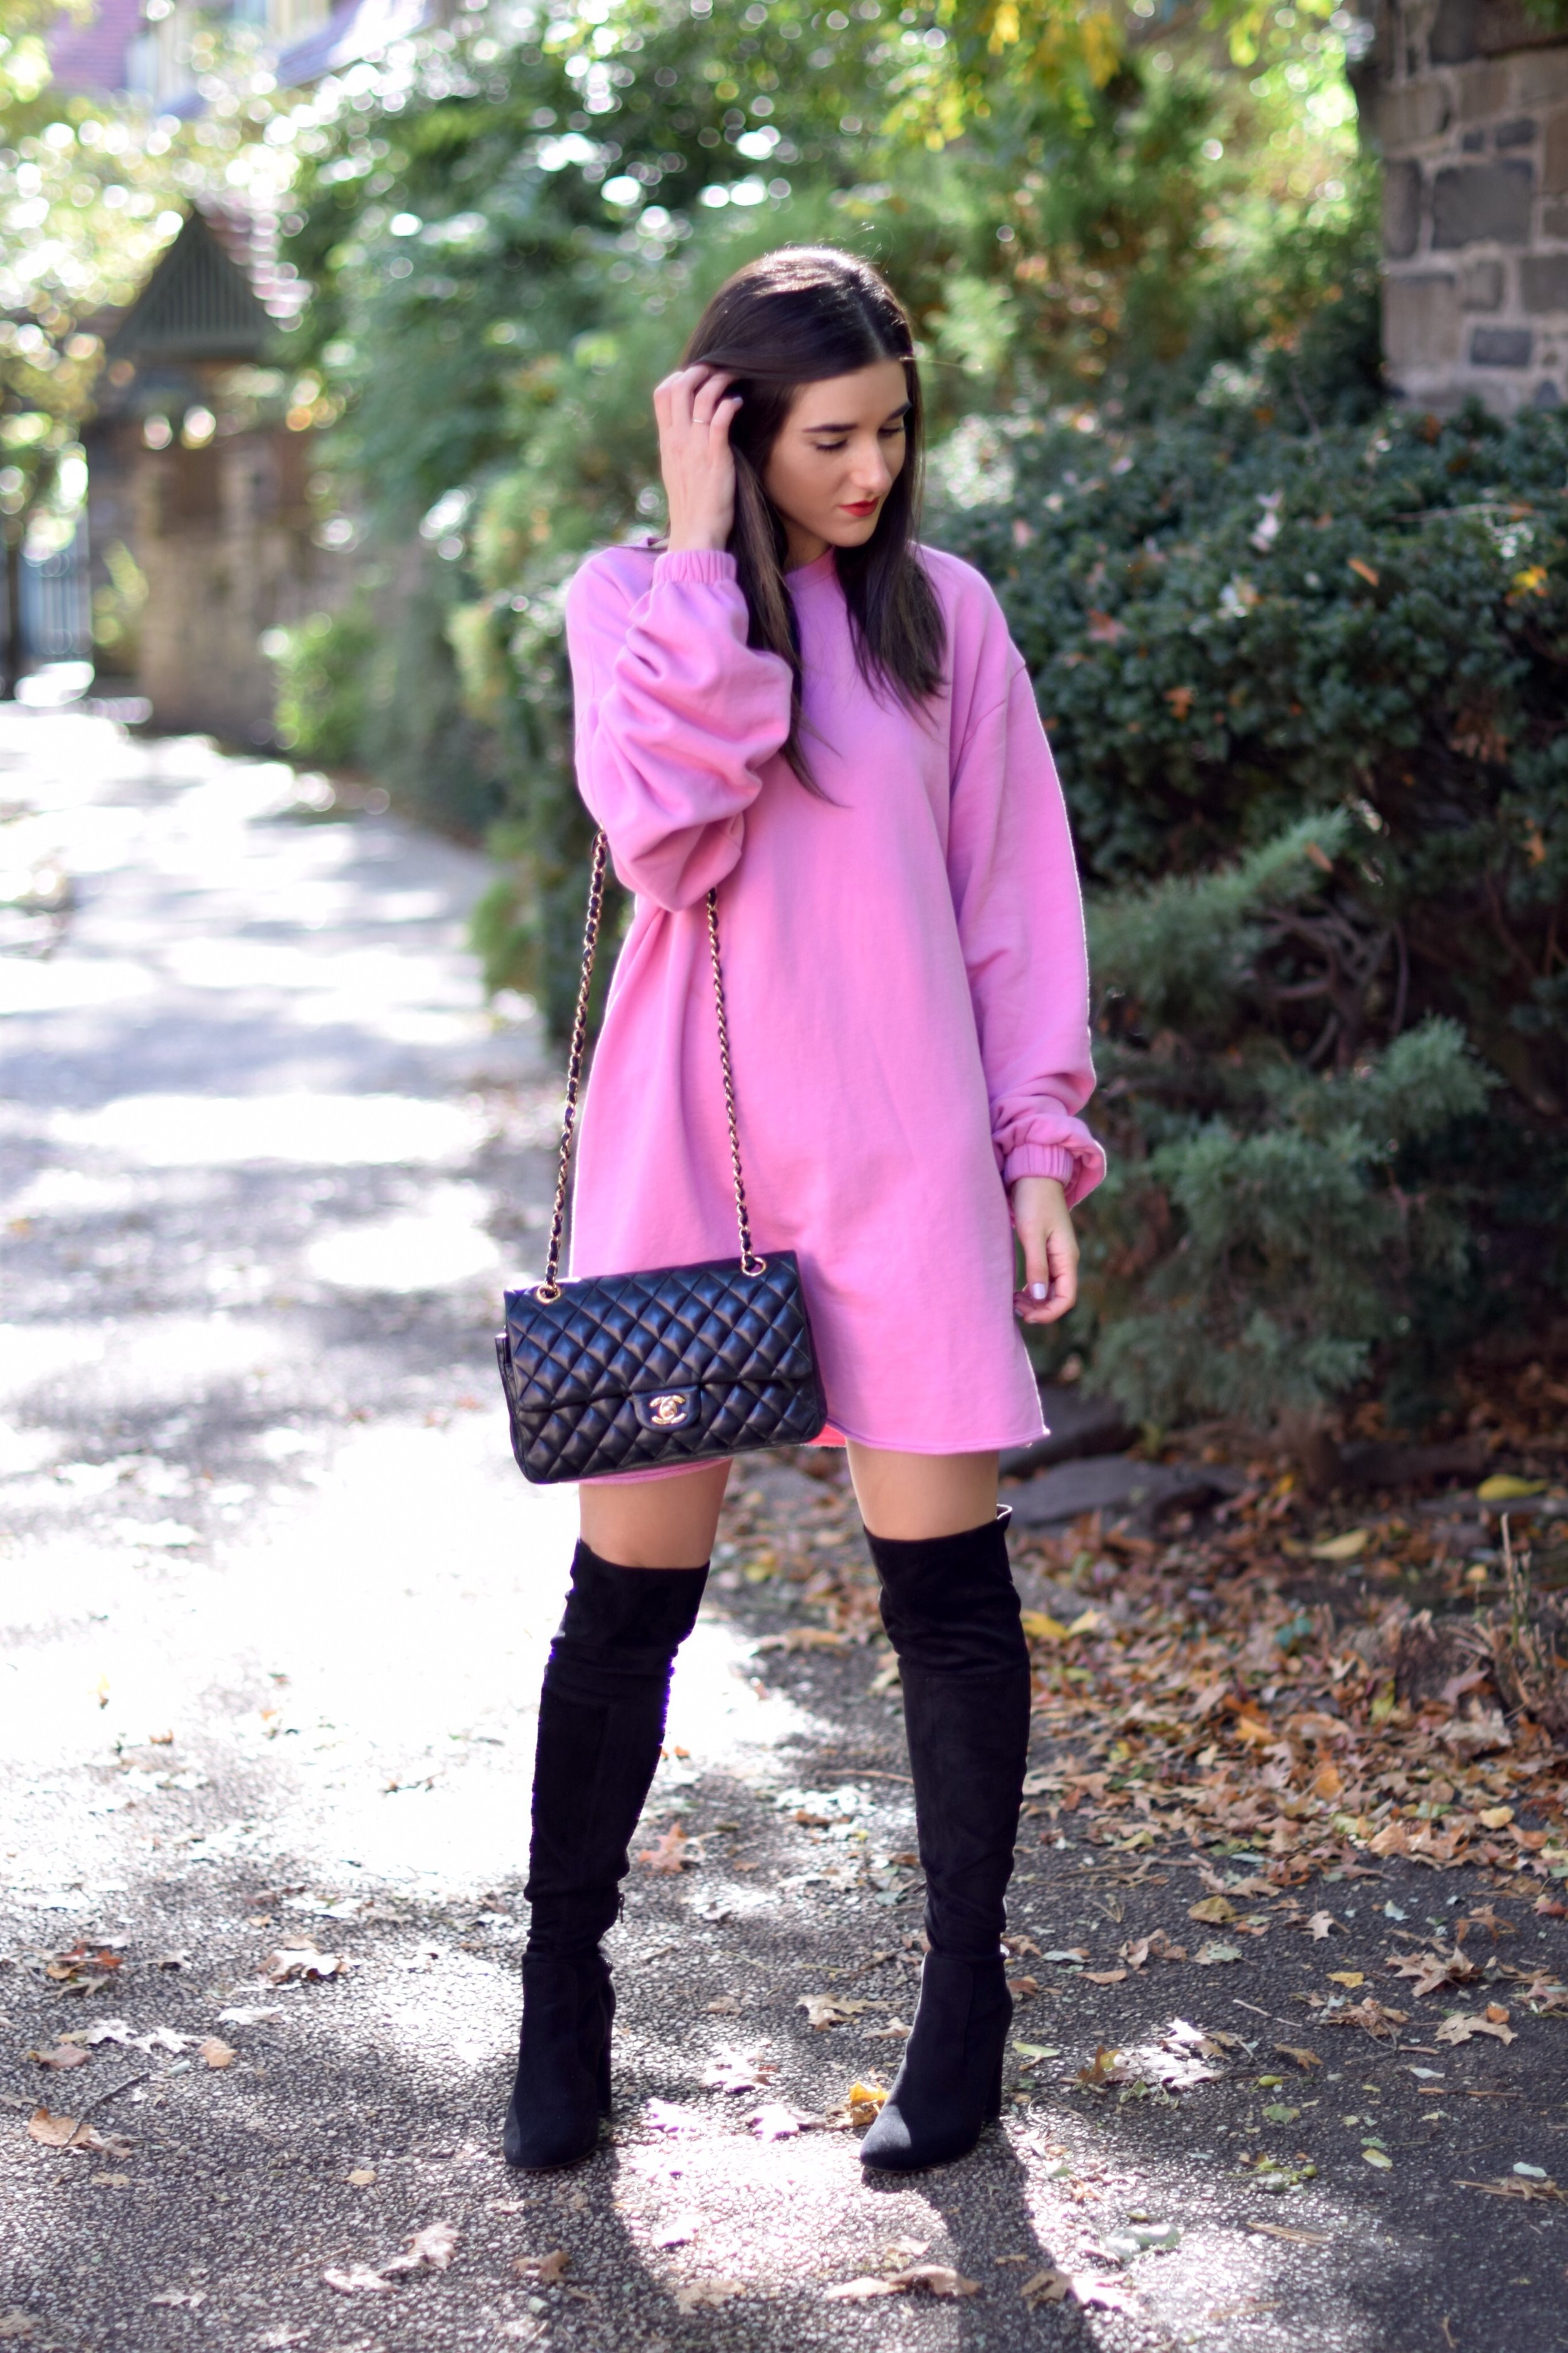 Pink Sweatshirt Dress Black OTK Boots Blogging Before The Days Of Instagram Esther Santer Fashion Blog NYC Street Style Blogger Outfit OOTD Trendy Over The Knee Hair Girl Women New York Chanel Bag Designer ASOS Pretty Shopping  Sale Beautiful Winter.jpg